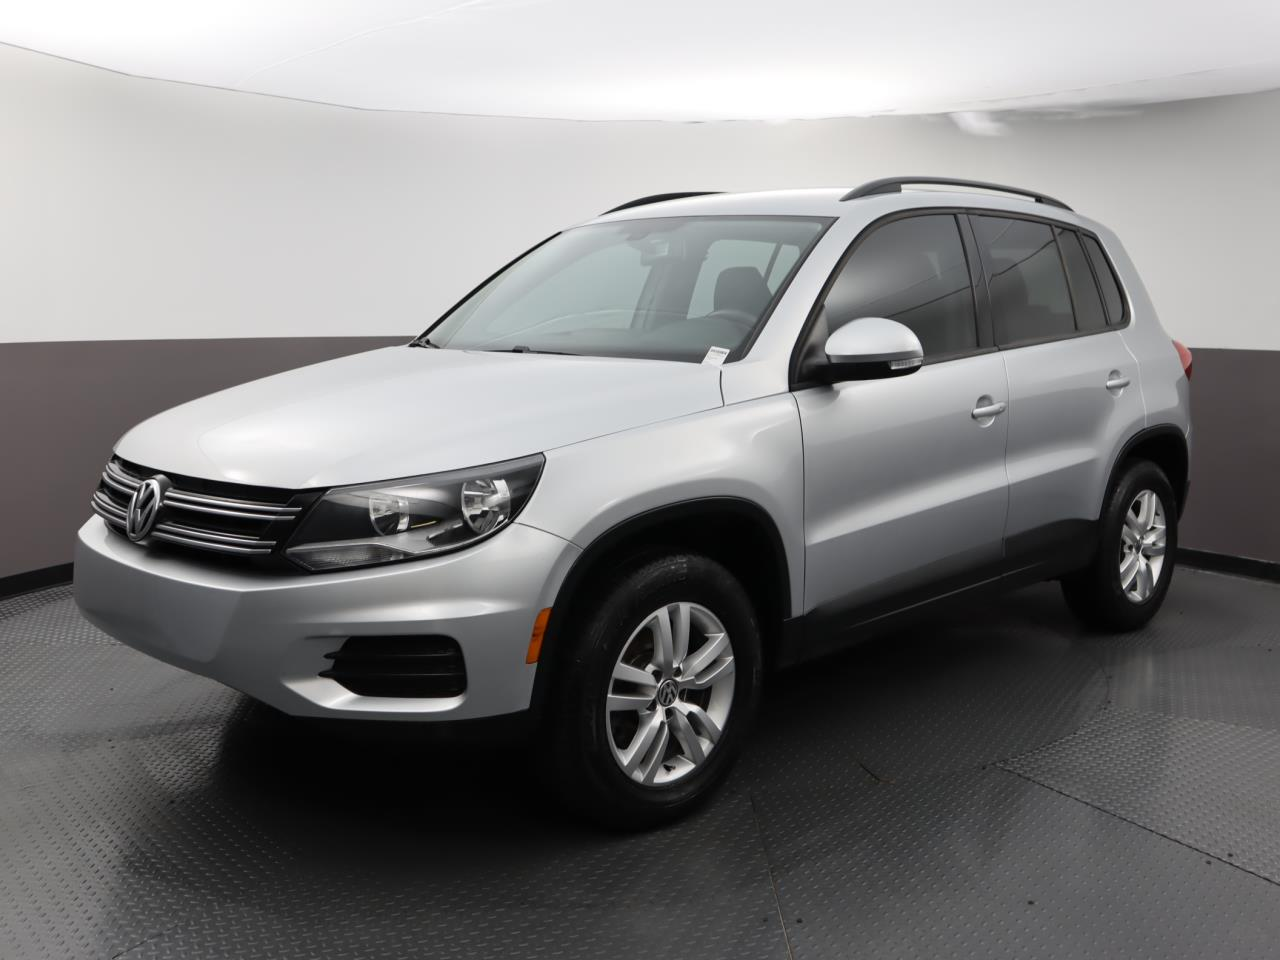 Used VOLKSWAGEN TIGUAN 2017 WEST PALM S